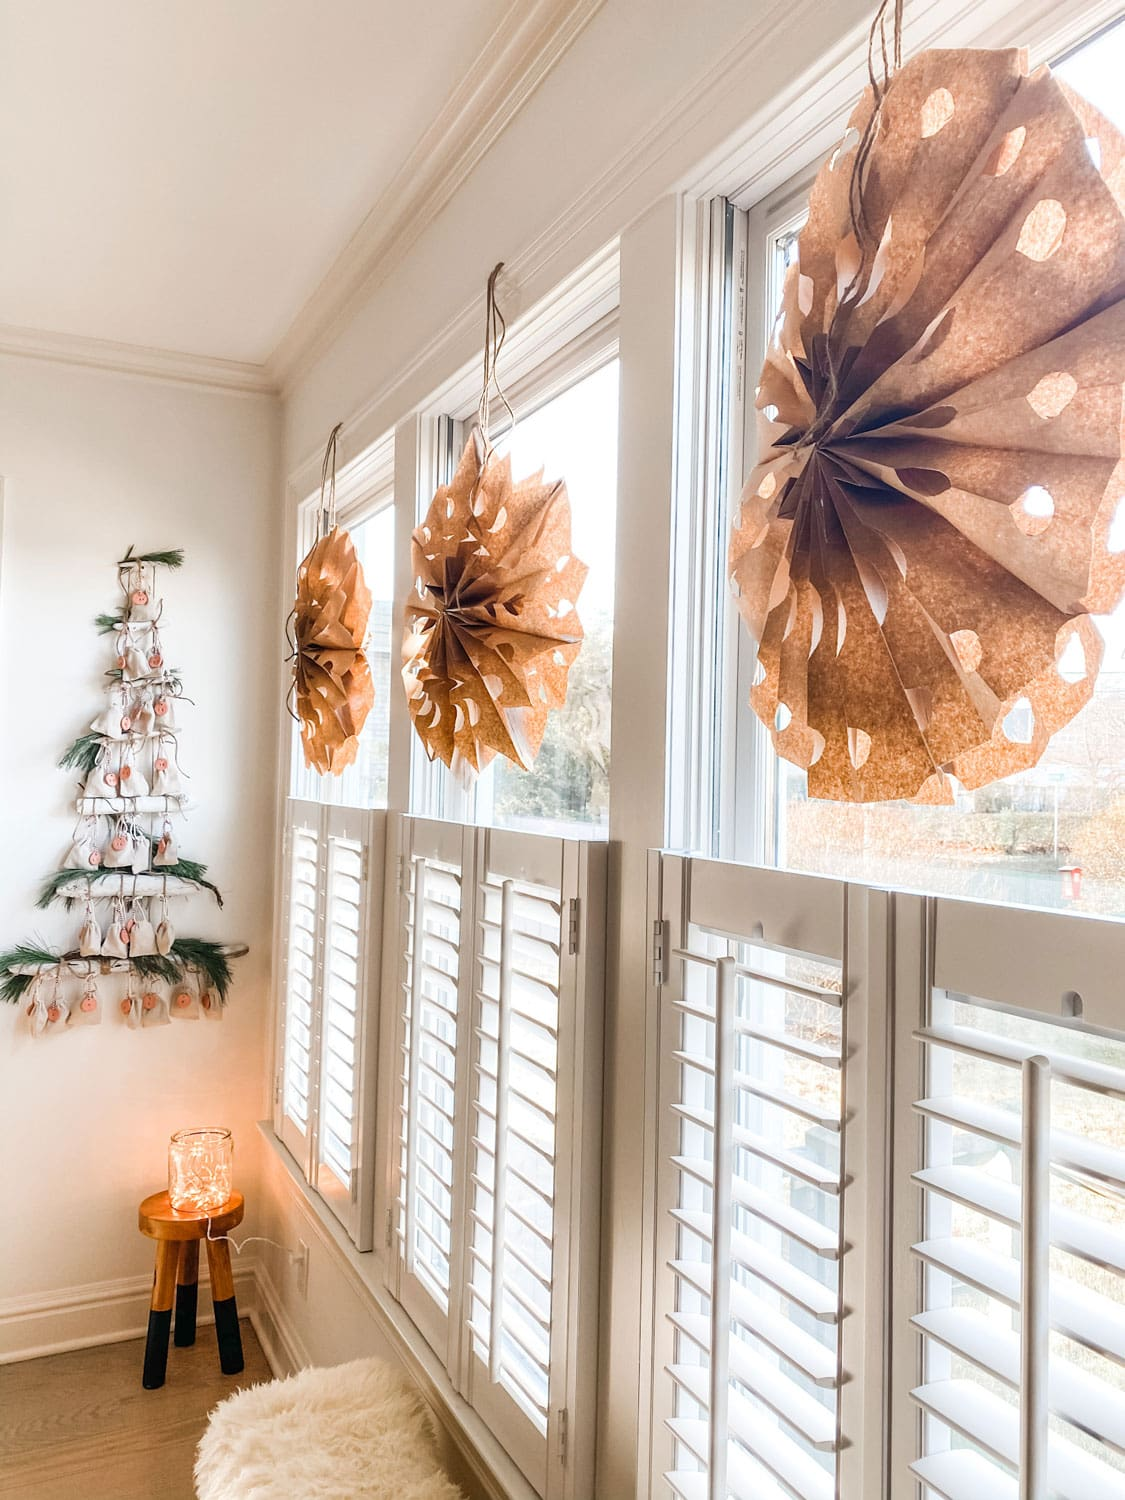 large paper bag snowflakes in windows